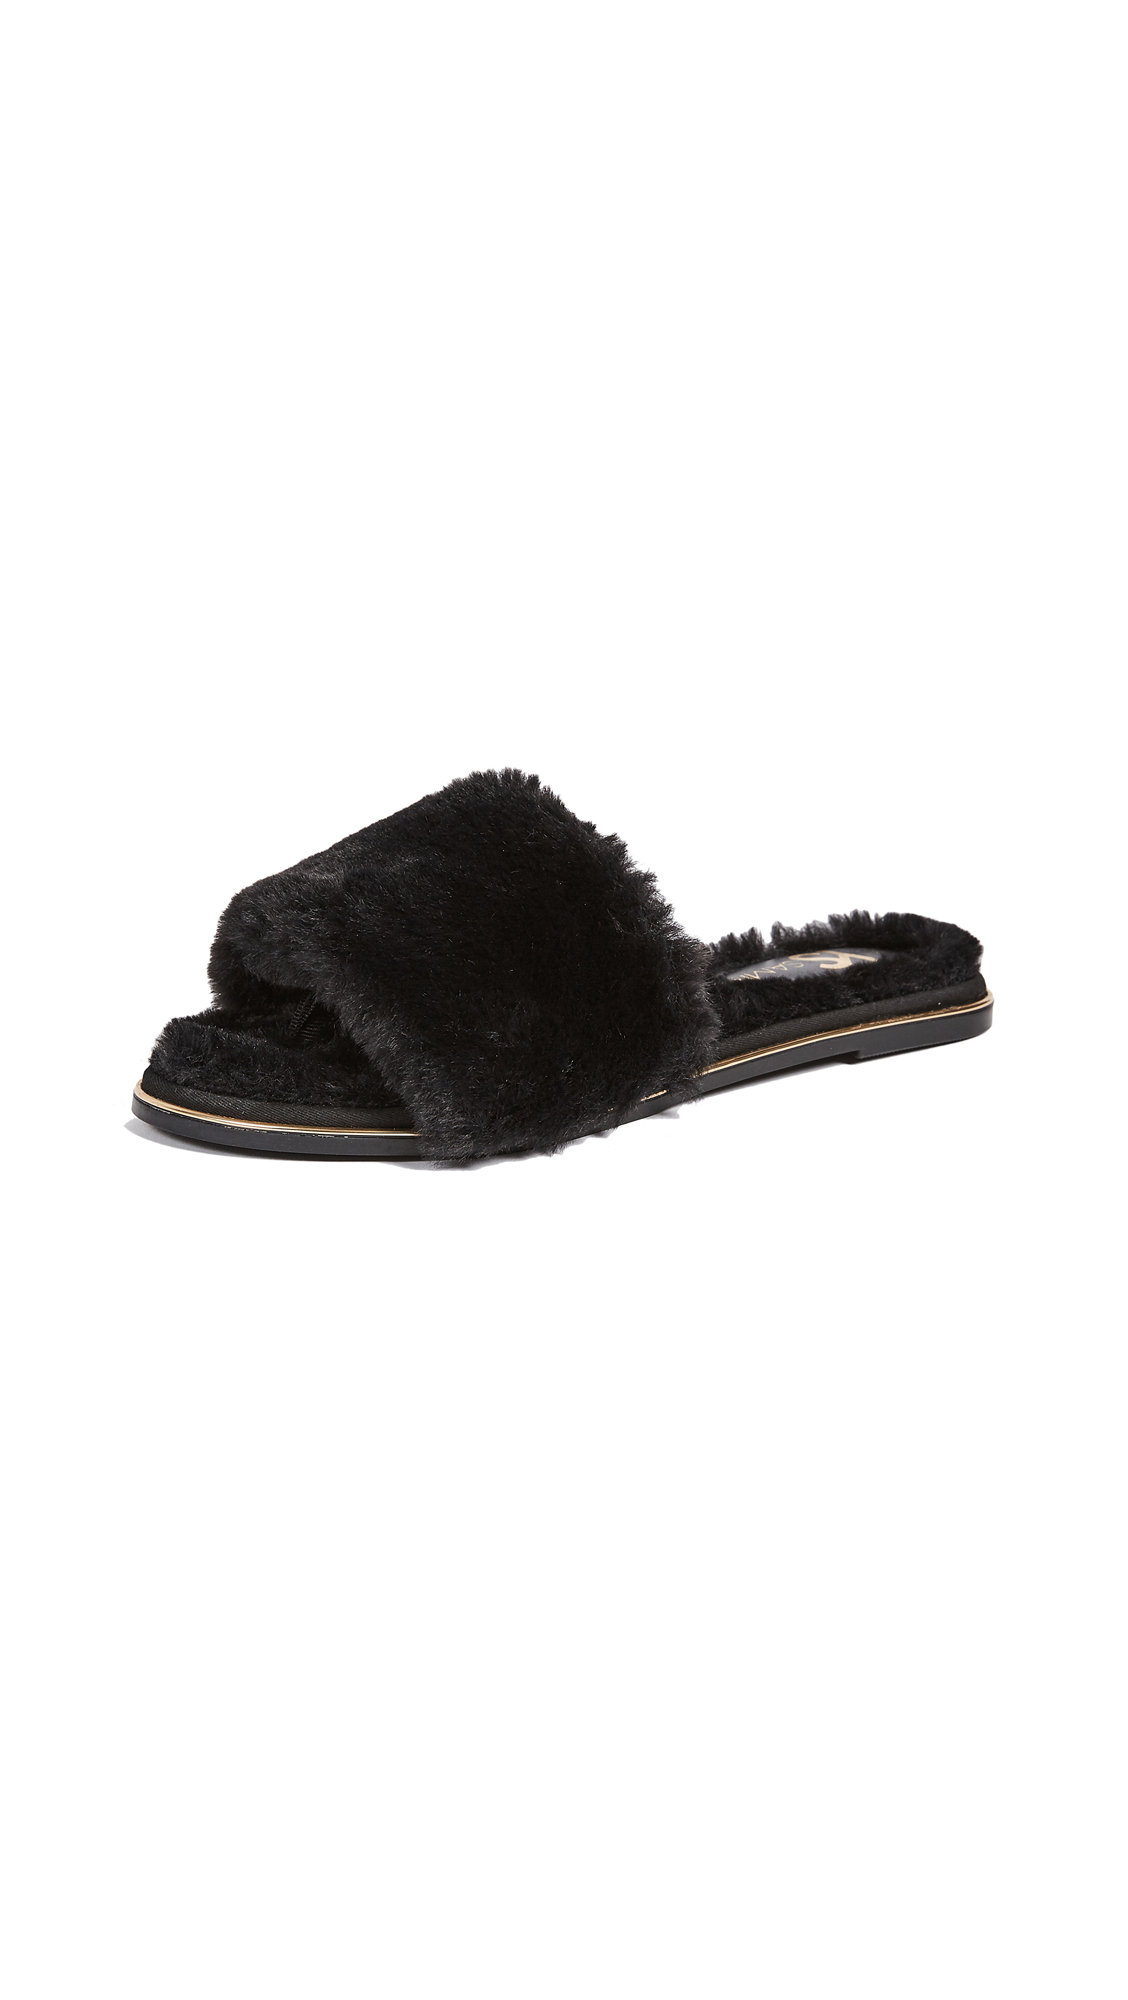 Yosi Samra Rose Faux Fur Slides - Black